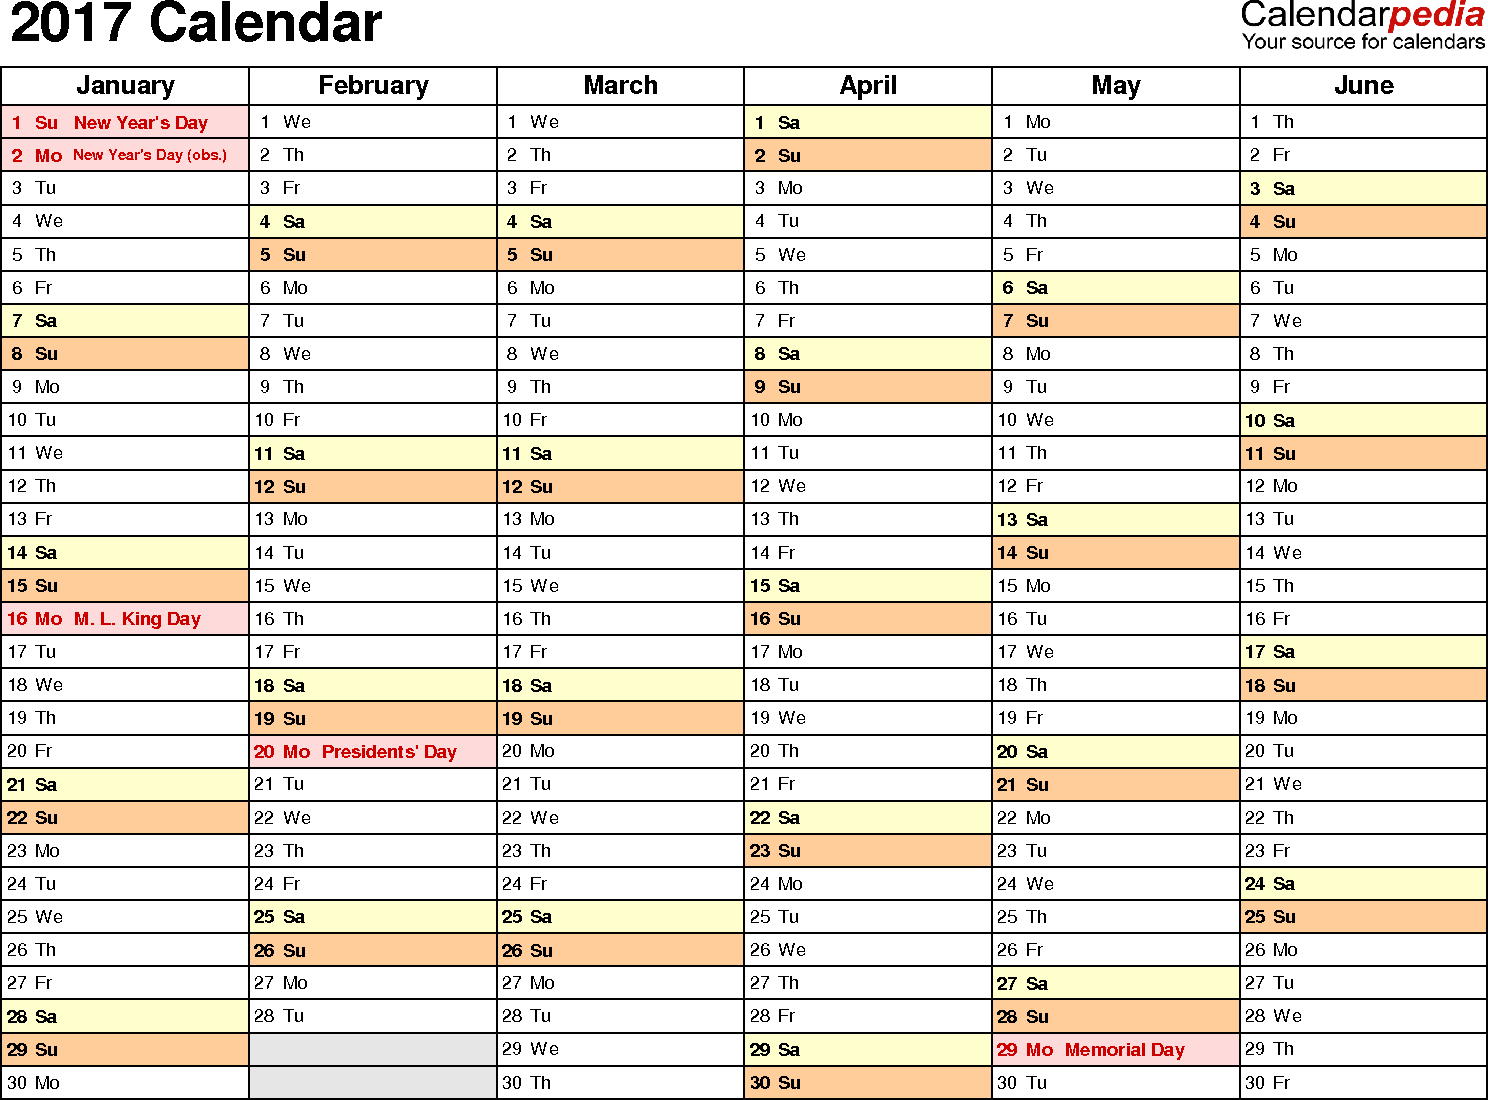 Ediblewildsus  Splendid  Calendar  Download  Free Printable Excel Templates Xls With Gorgeous Template   Calendar For Excel Months Horizontally  Pages Landscape Orientation With Nice Making A Database In Excel Also Strategic Planning Template Excel In Addition Kruskalwallis Test Excel And Ms Query Excel As Well As How To Combine Multiple Columns Into One In Excel Additionally How To Get A Histogram In Excel From Calendarpediacom With Ediblewildsus  Gorgeous  Calendar  Download  Free Printable Excel Templates Xls With Nice Template   Calendar For Excel Months Horizontally  Pages Landscape Orientation And Splendid Making A Database In Excel Also Strategic Planning Template Excel In Addition Kruskalwallis Test Excel From Calendarpediacom